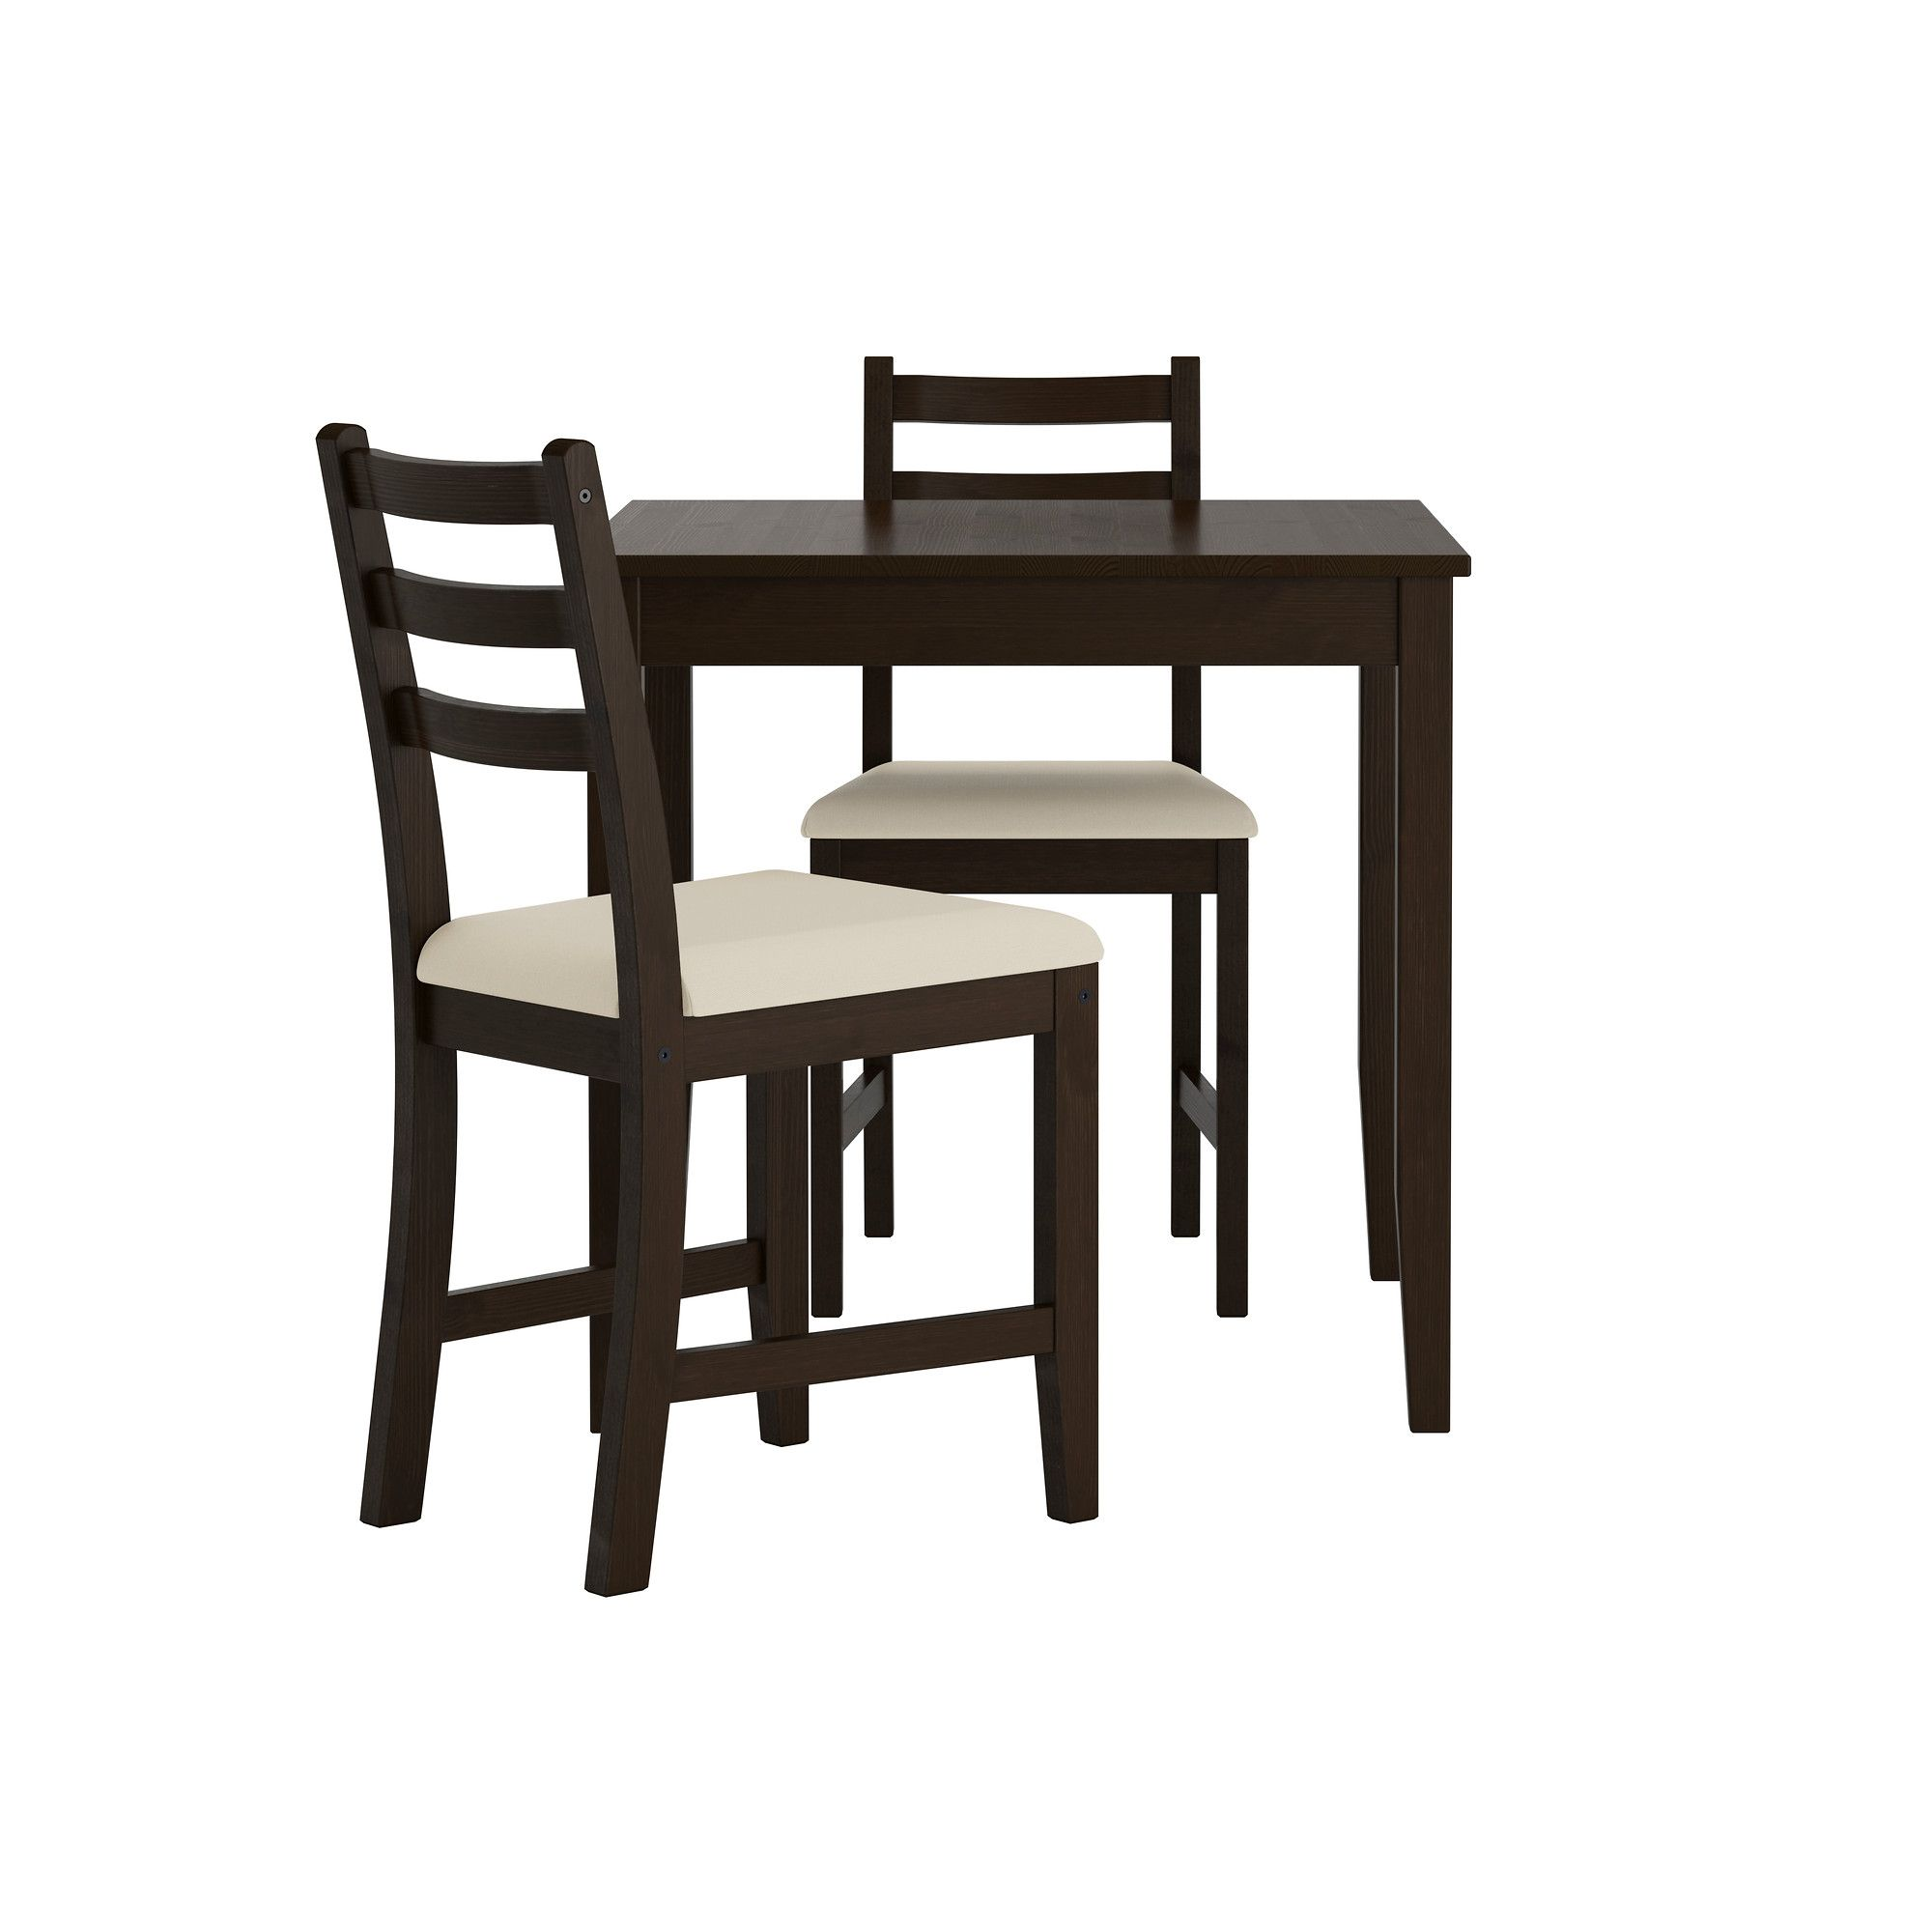 Lerhamn Table And 2 Chairs Black Brown Vittaryd Beige Inspiring